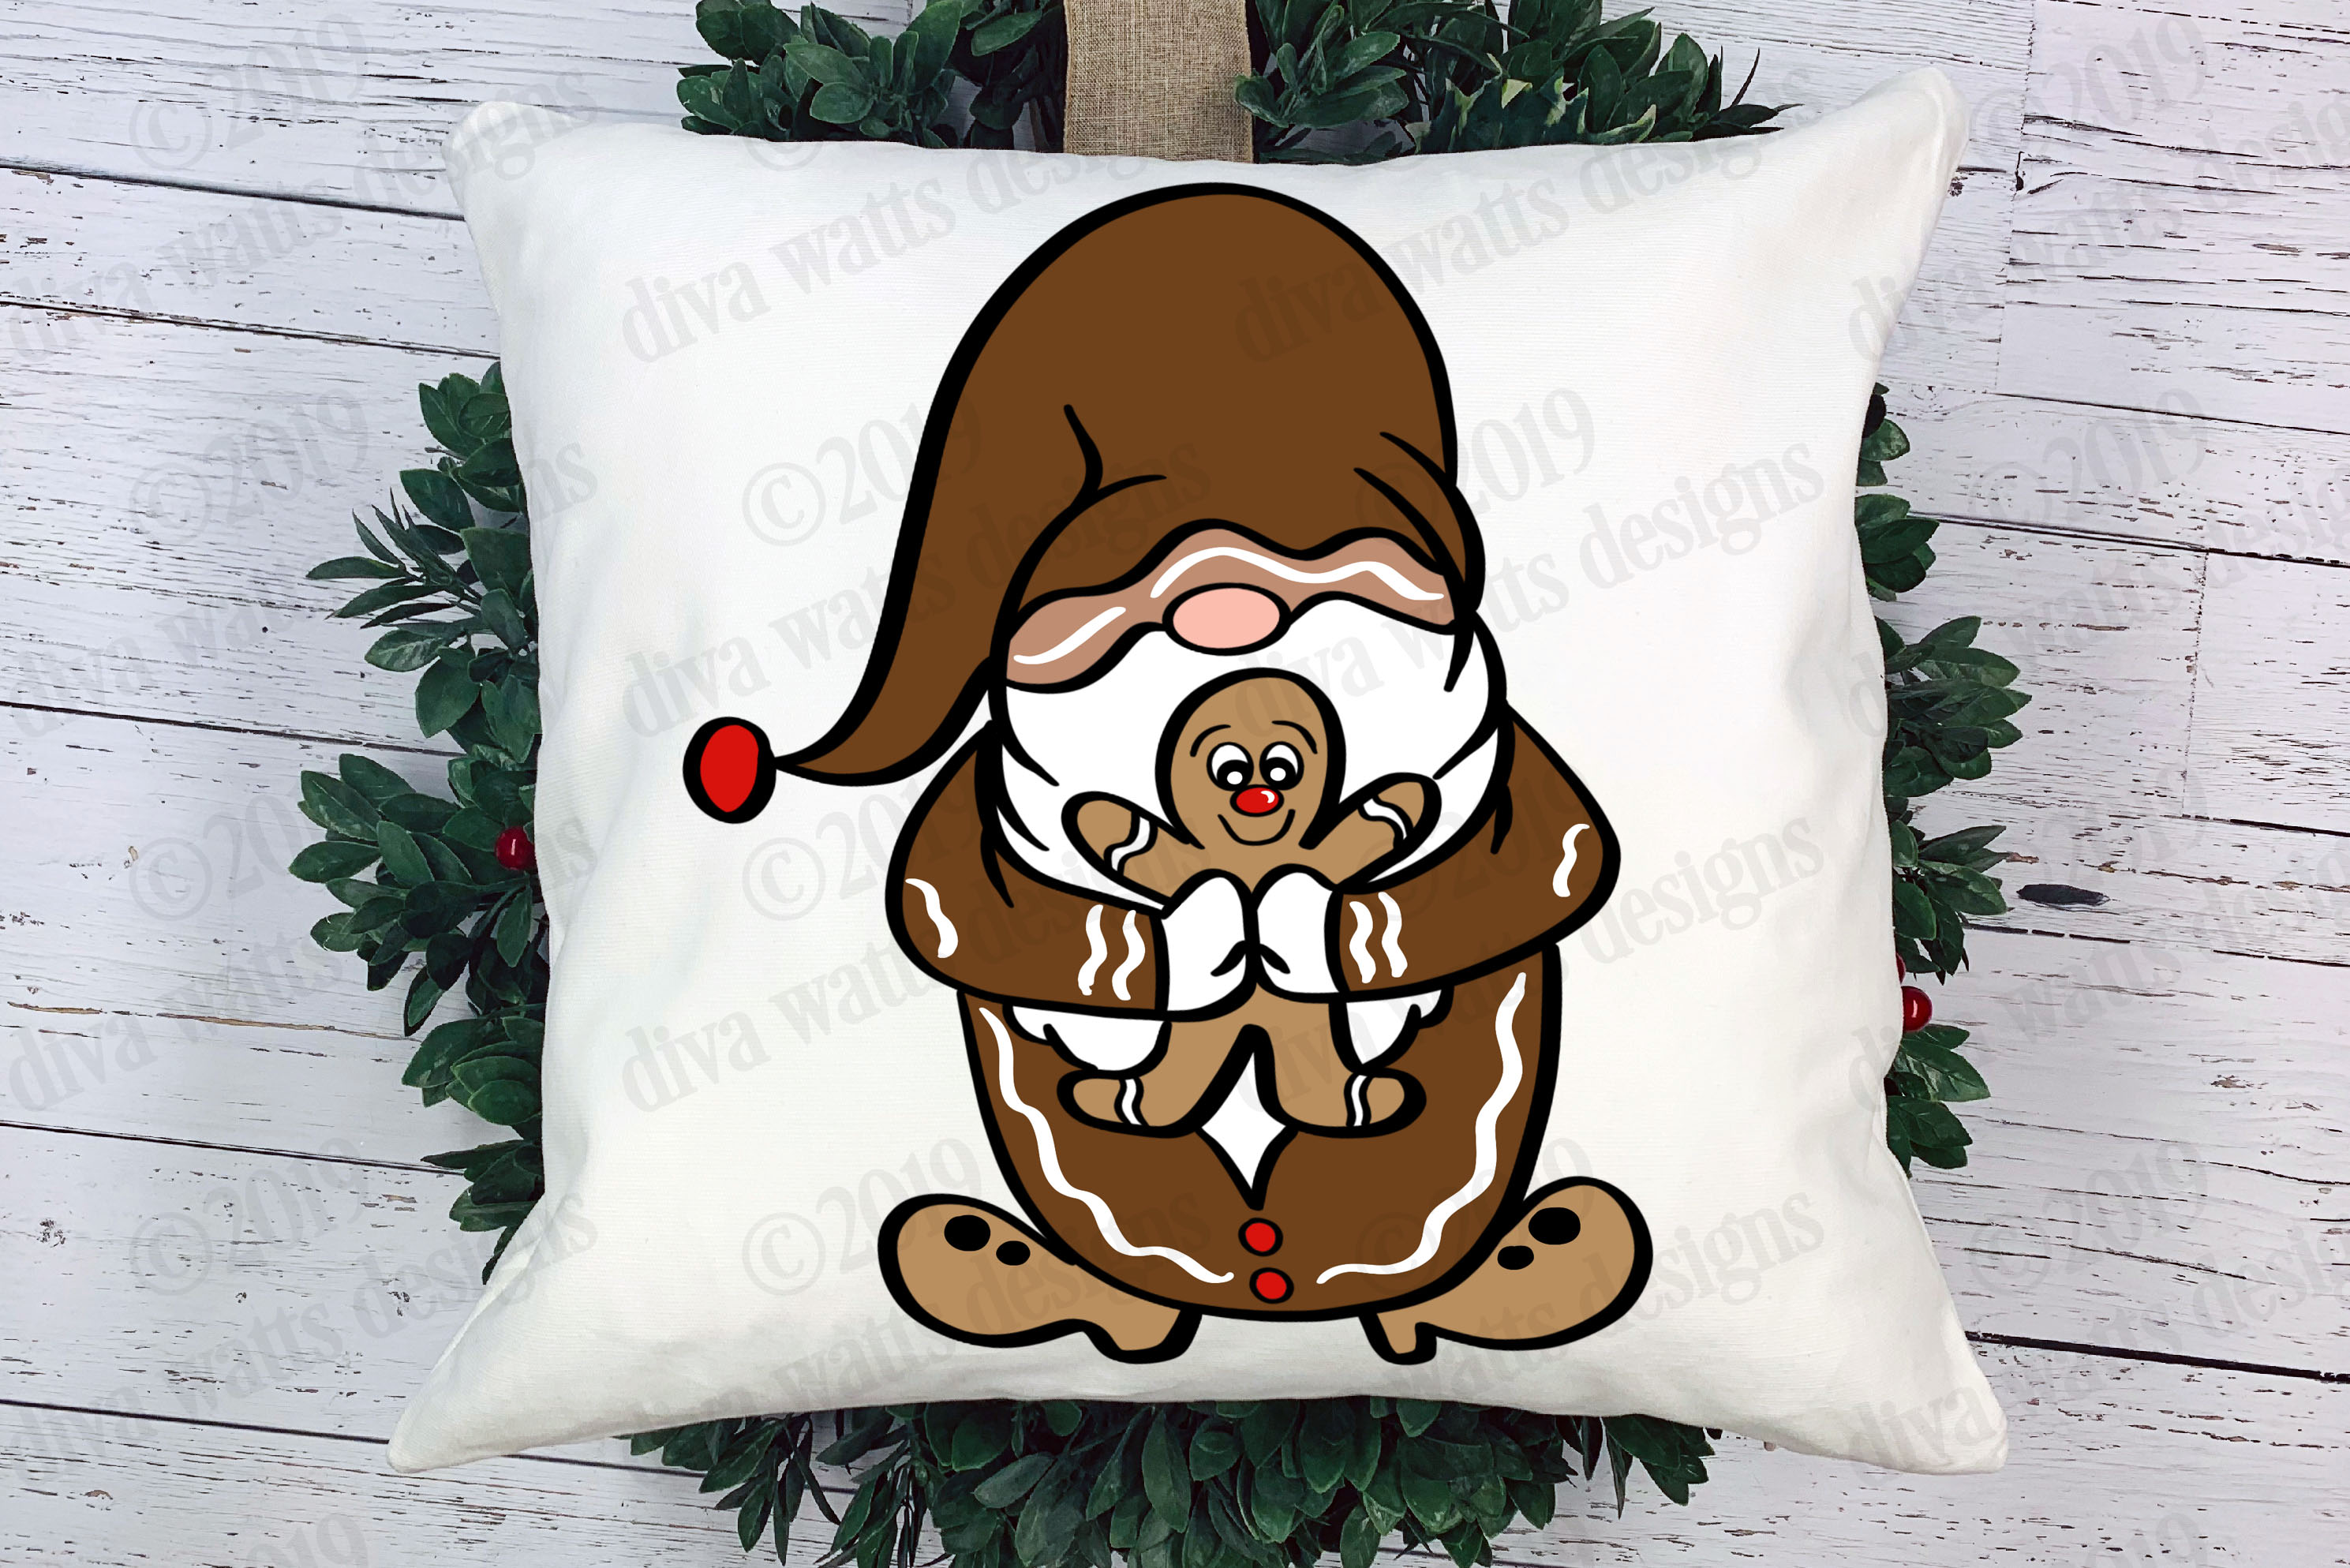 Gingerbread Man Christmas Gnome Cutting File example image 1